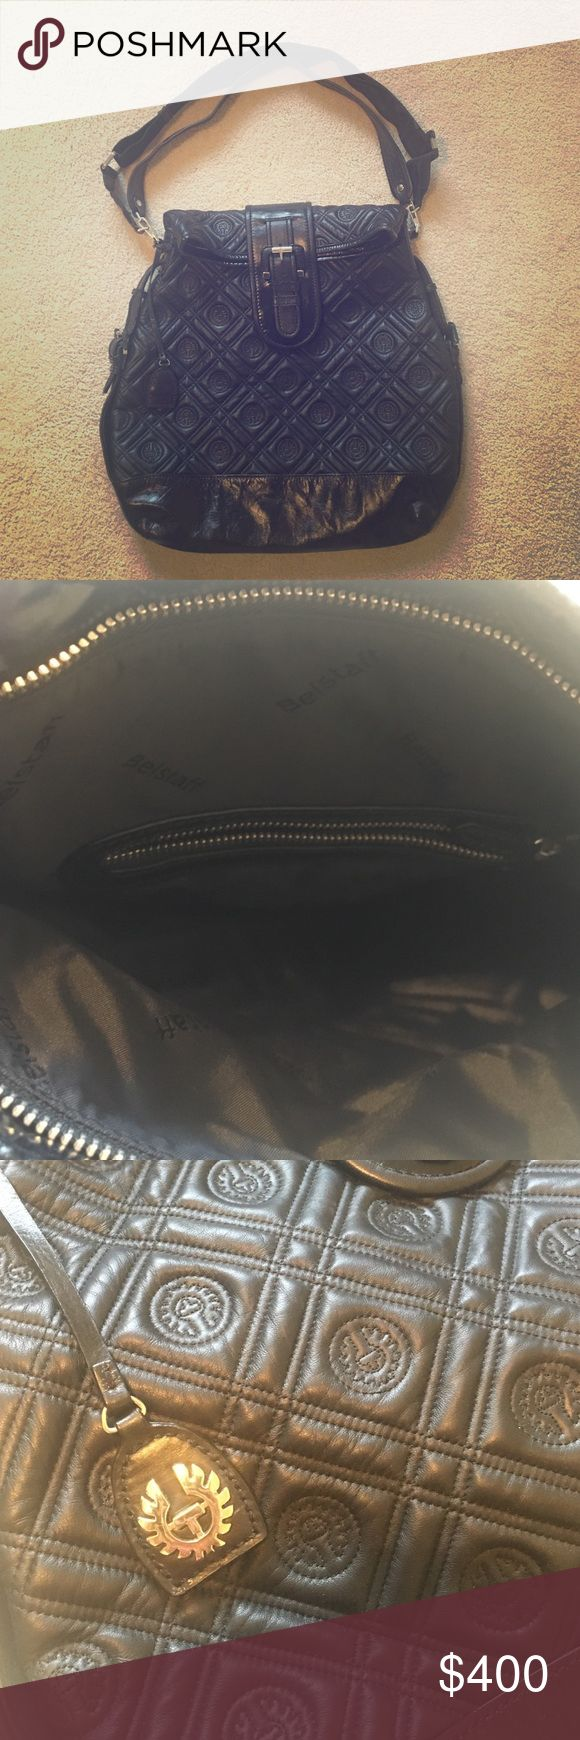 Belstaff Large Quilted Logo Bag Authentic. Comes with leather strap and adjustable nylon cross-body strap. Either strap can be removed. Silver hardware. Unique shape. Great bag for work or to use as a weekender. I actually never ended up using his bag so the liner is in perfect condition. Belstaff Bags